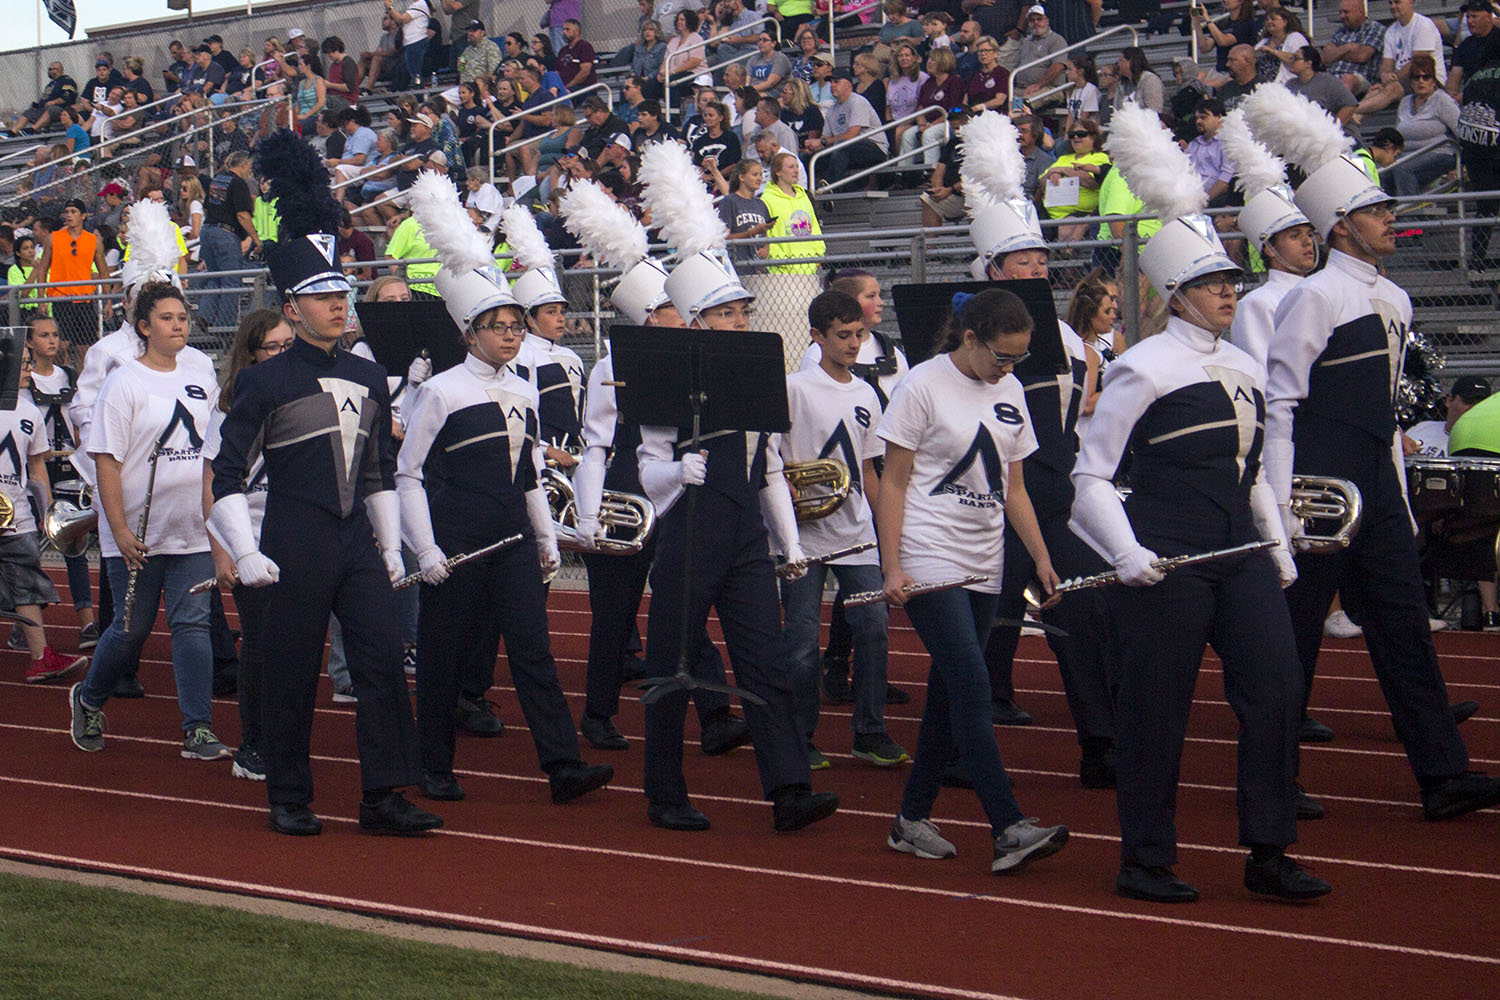 Eighth grade band joins Spartan Regiment for Light the Field football game on Friday, Sept. 13.